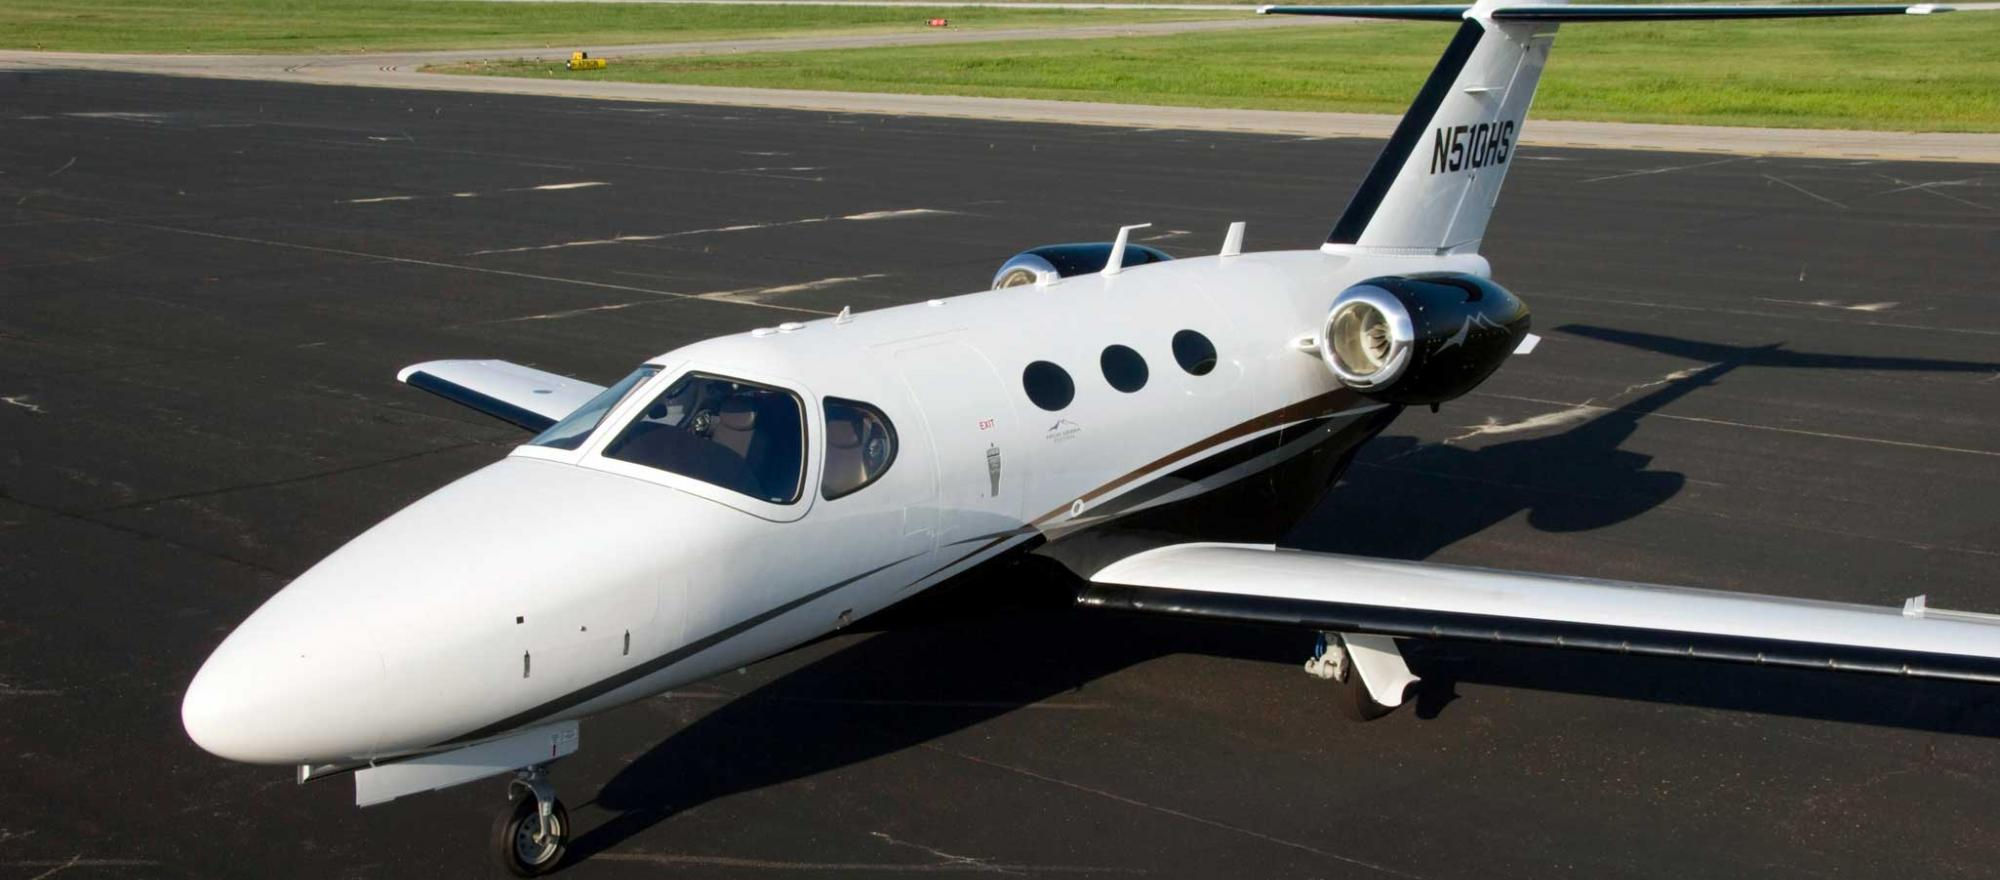 Cessna Plane Cessna Citation Mustang Business Jet Traveler